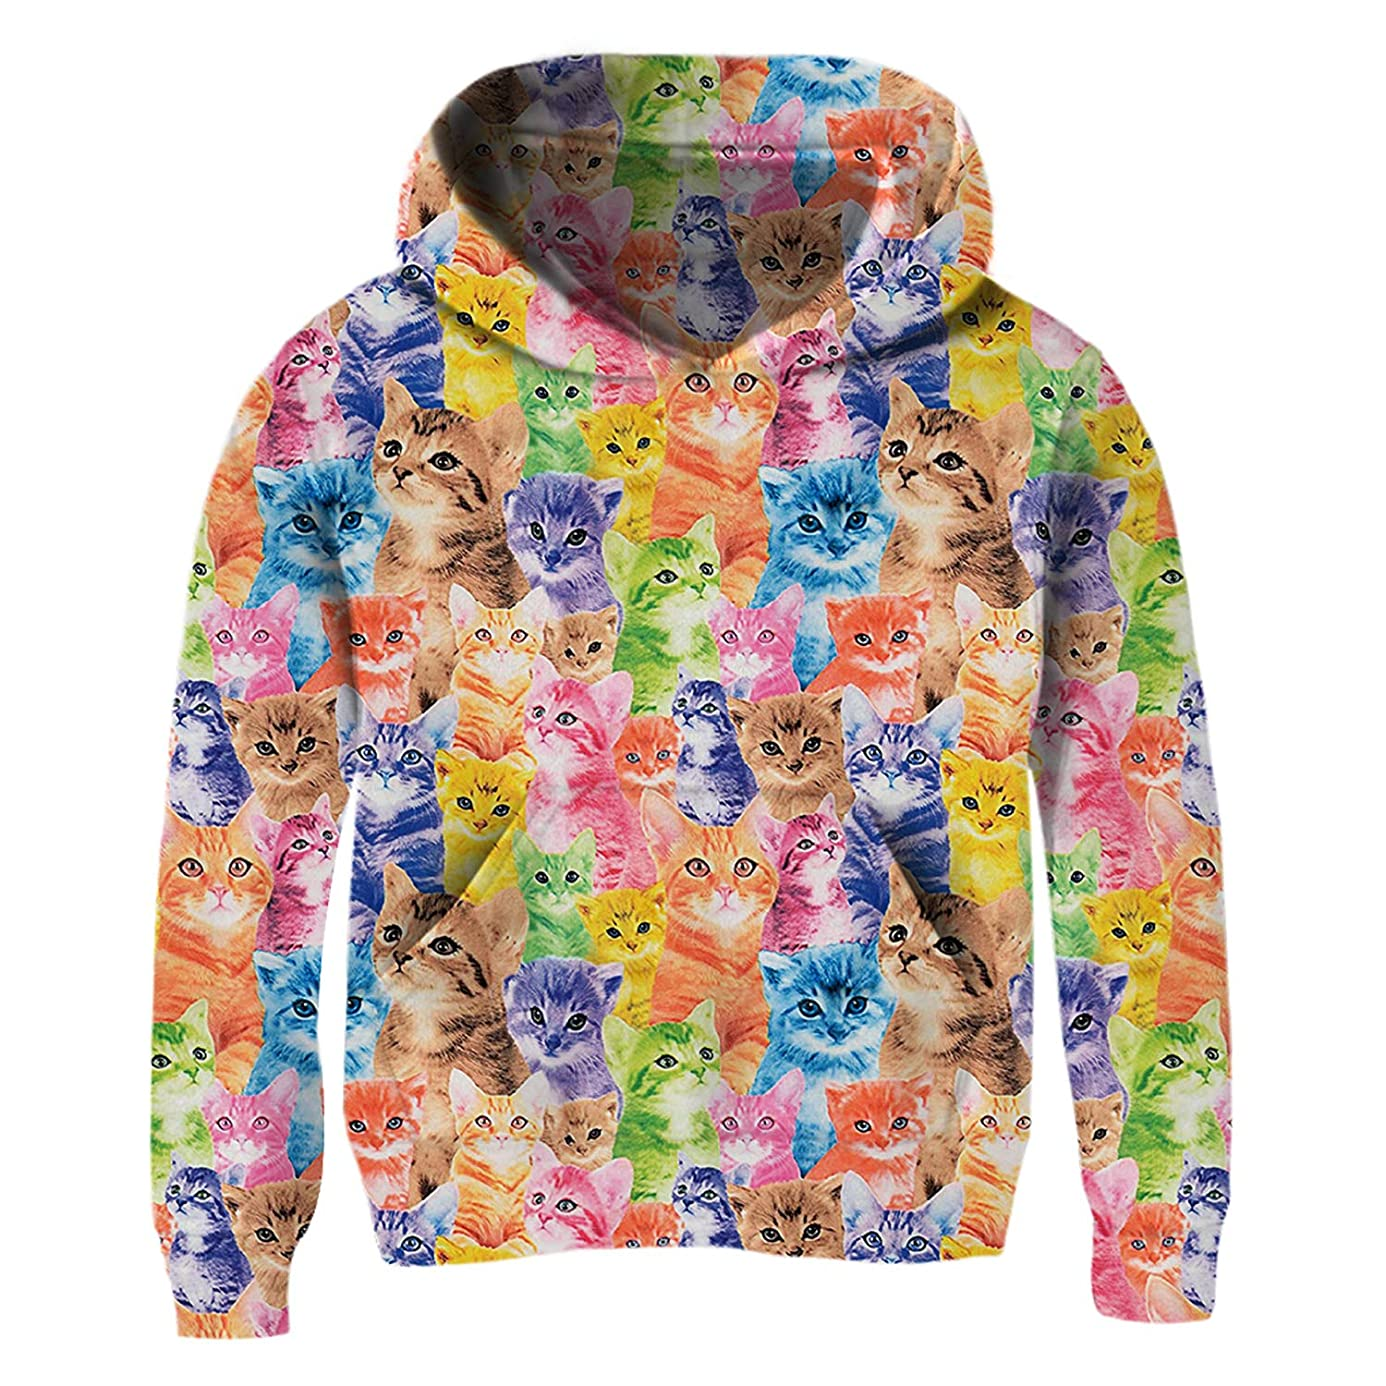 BFUSTYLE Little Girls 3D Print Pullover Hoodies with Pocket Hooded Sweatshirt Size 4-14